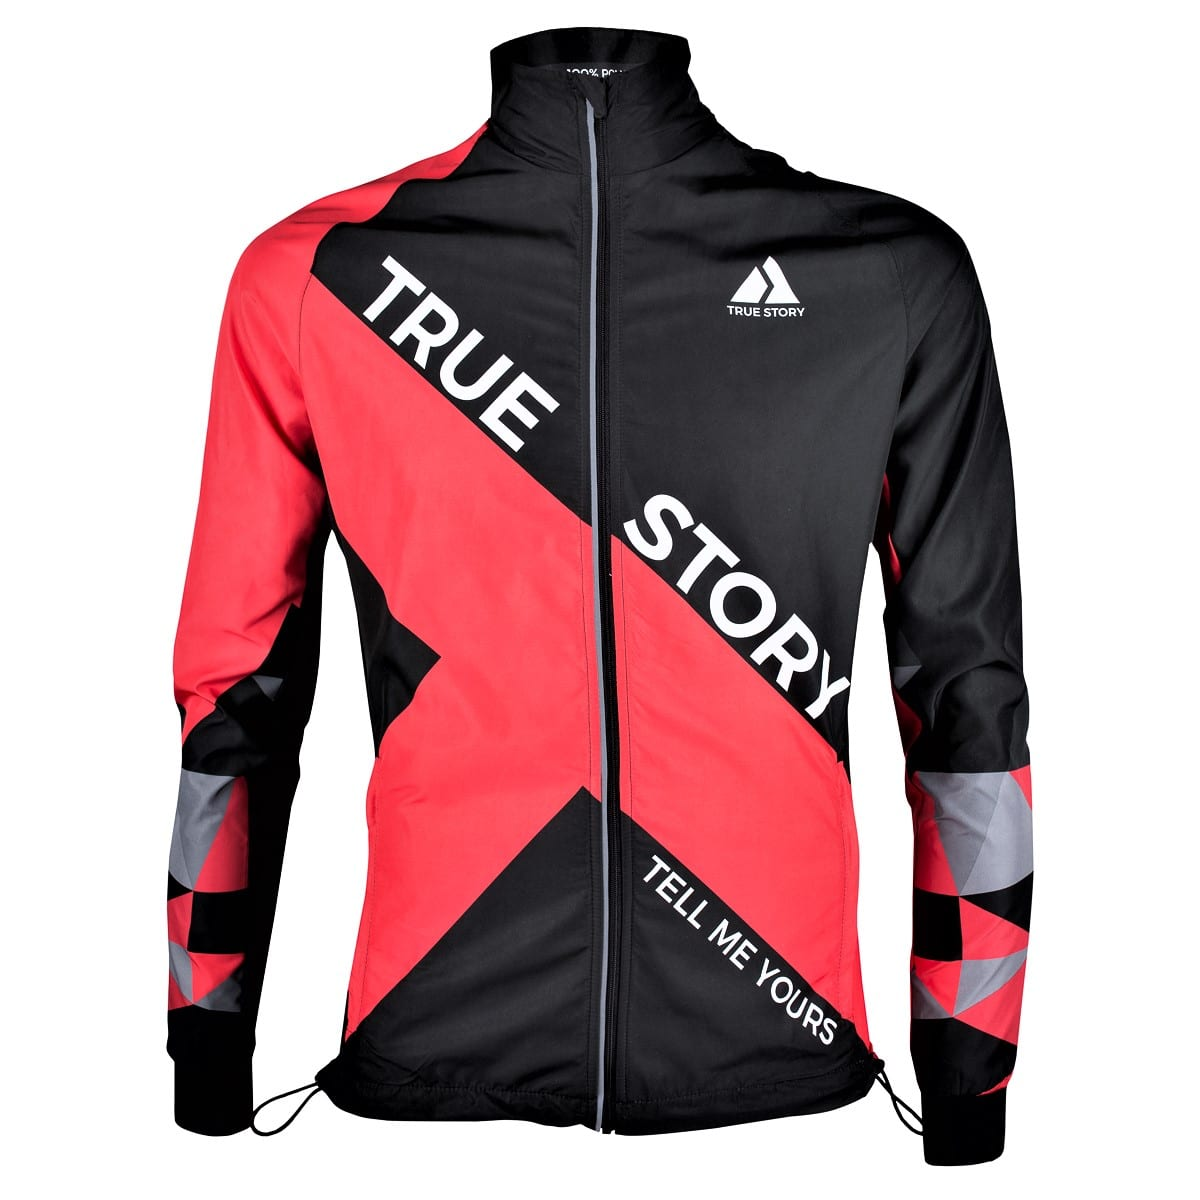 Shield warm up jacket